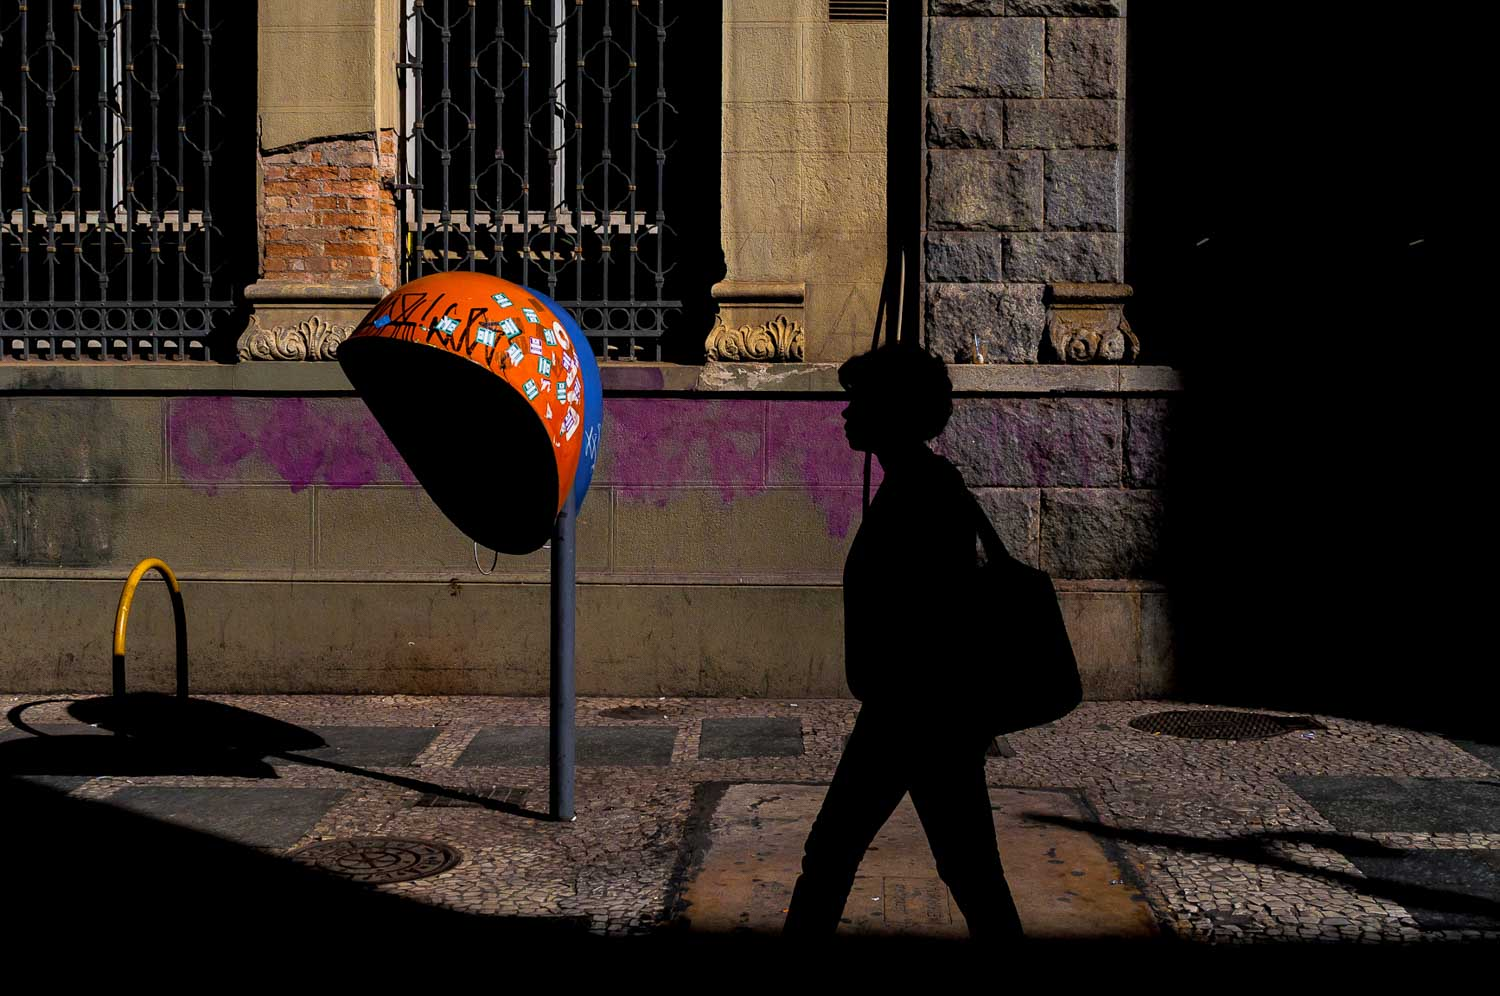 street street photo street photography life is street Mel Neves photographie de rue